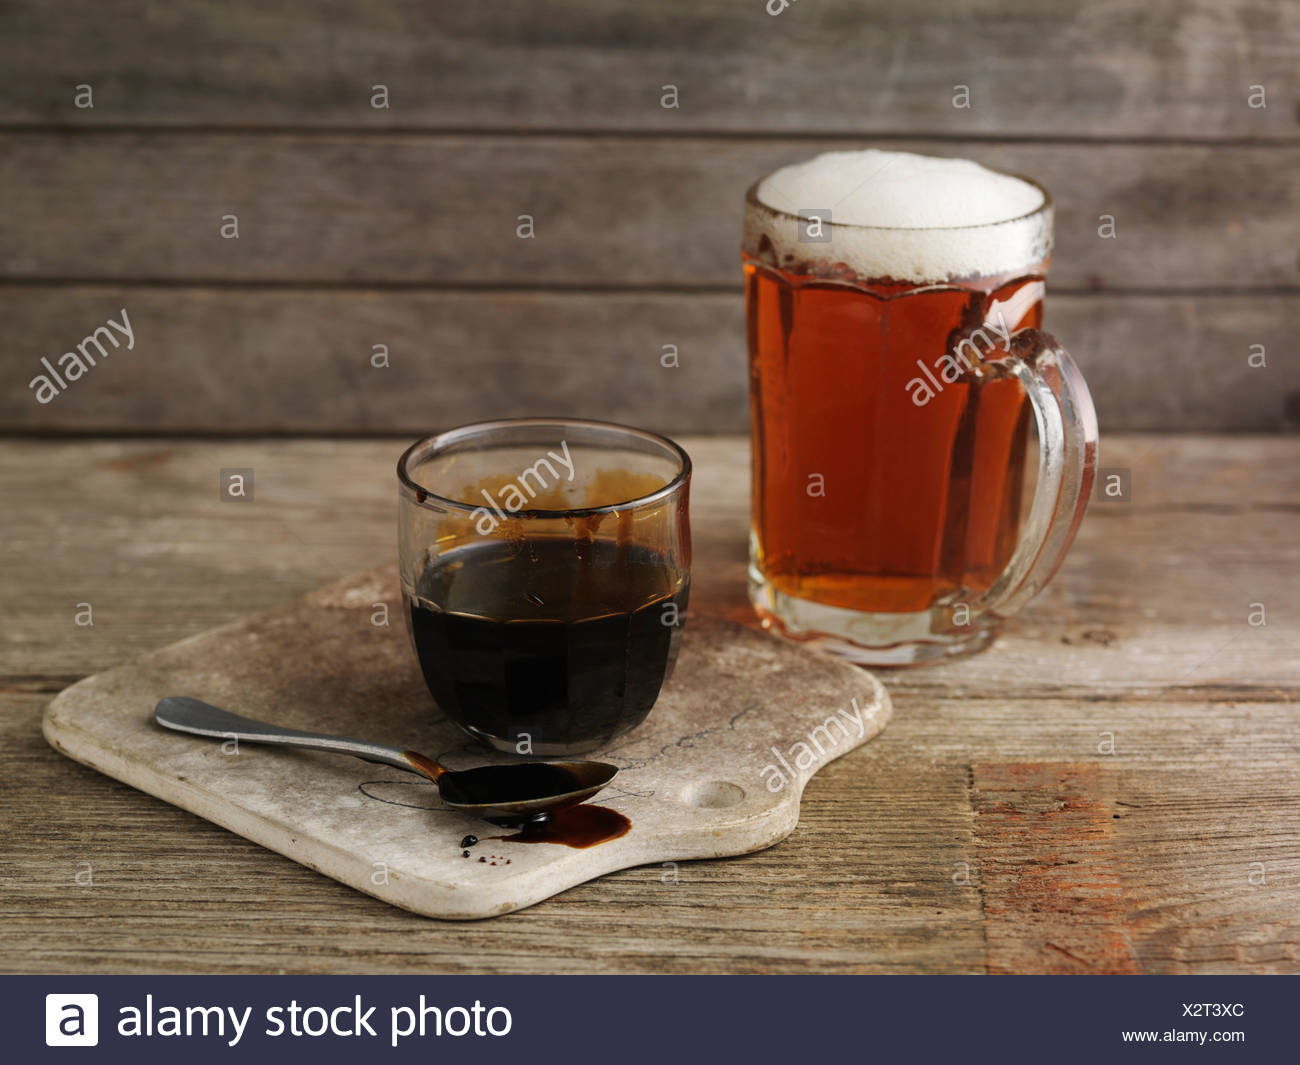 Still life with a pint of ale and pot of treacle (ingredients for glazed ham) - Stock Image